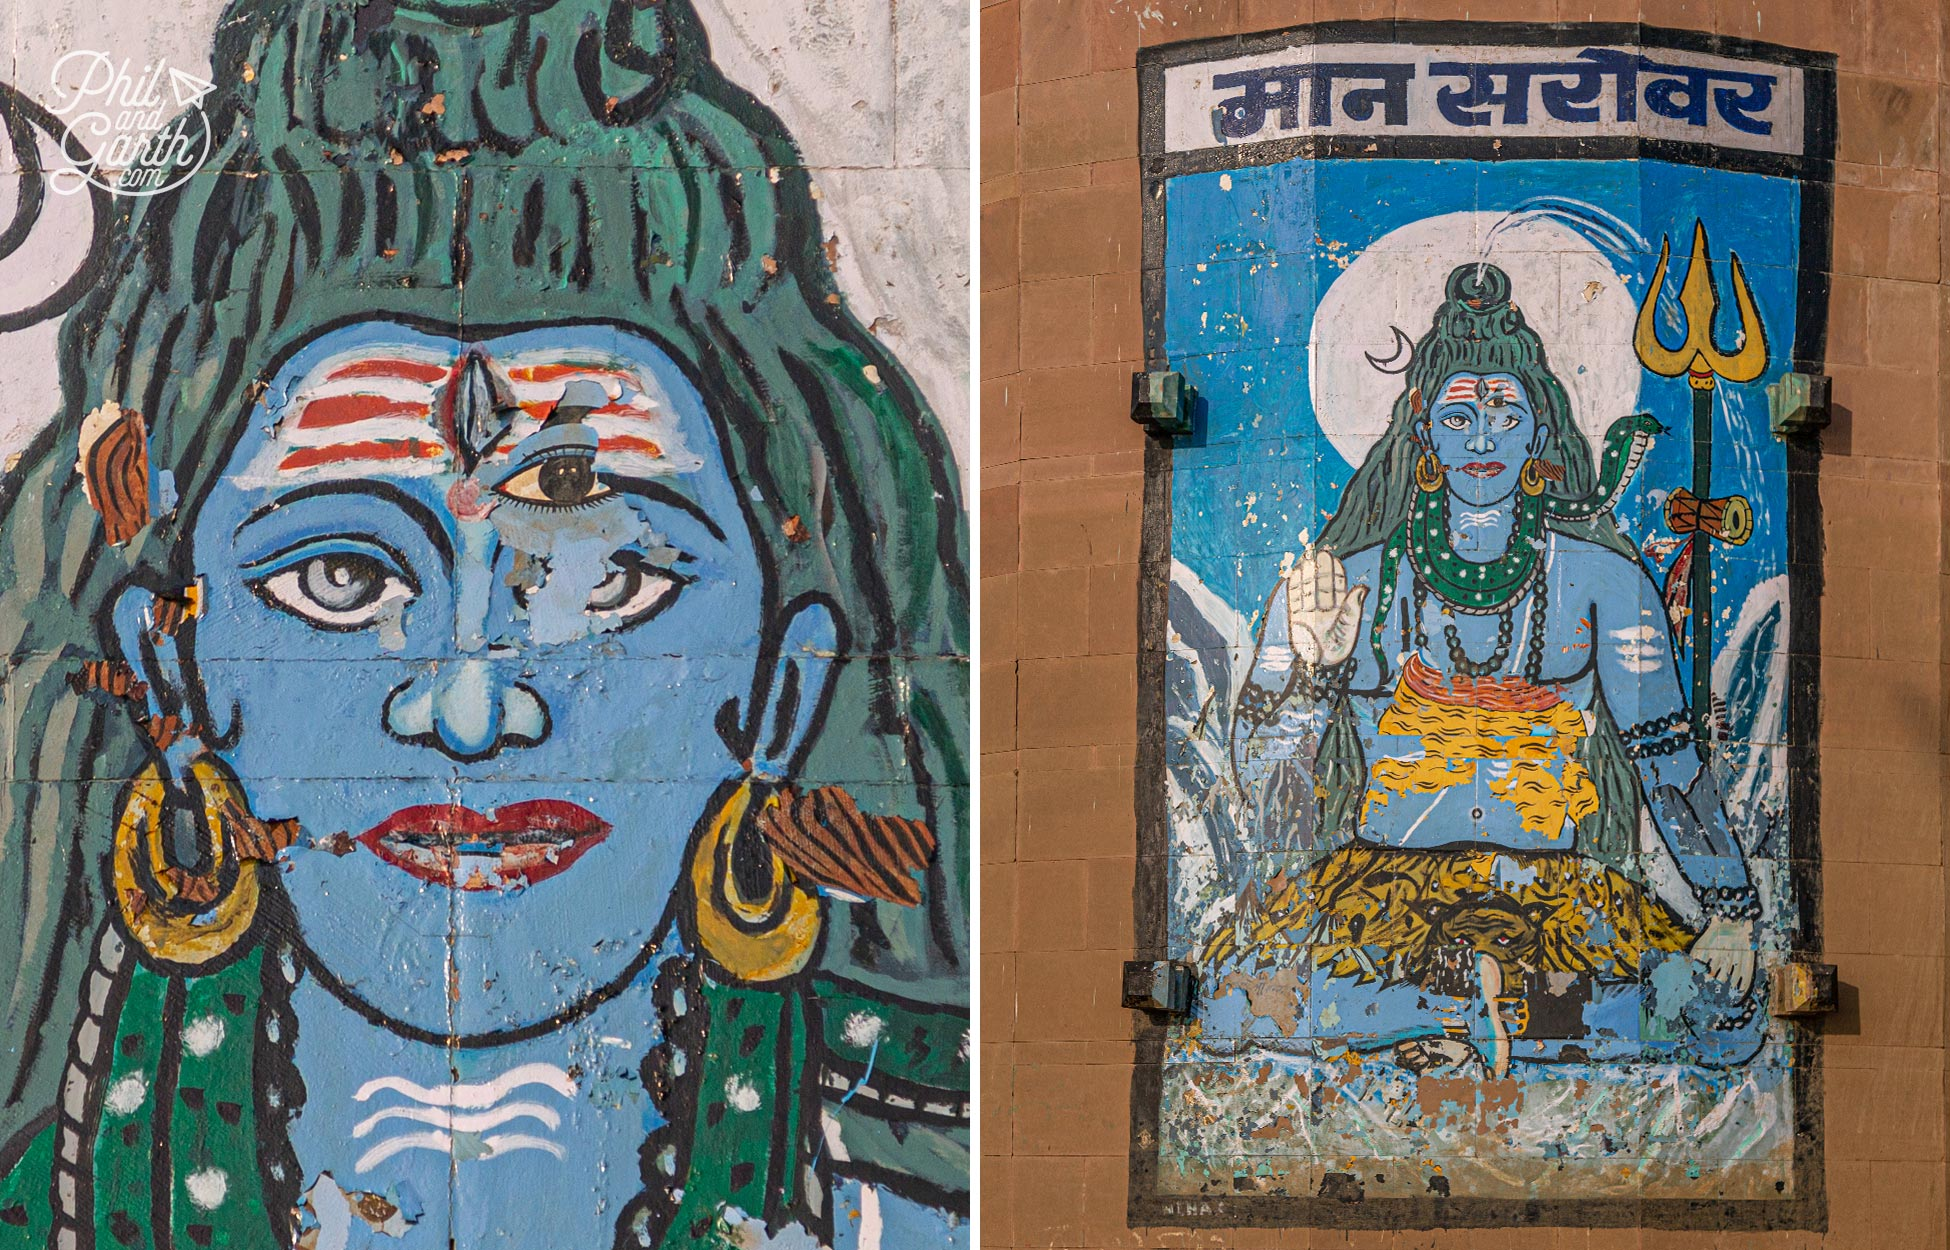 A large artwork on a wall depicting the Hindu god, Shiva